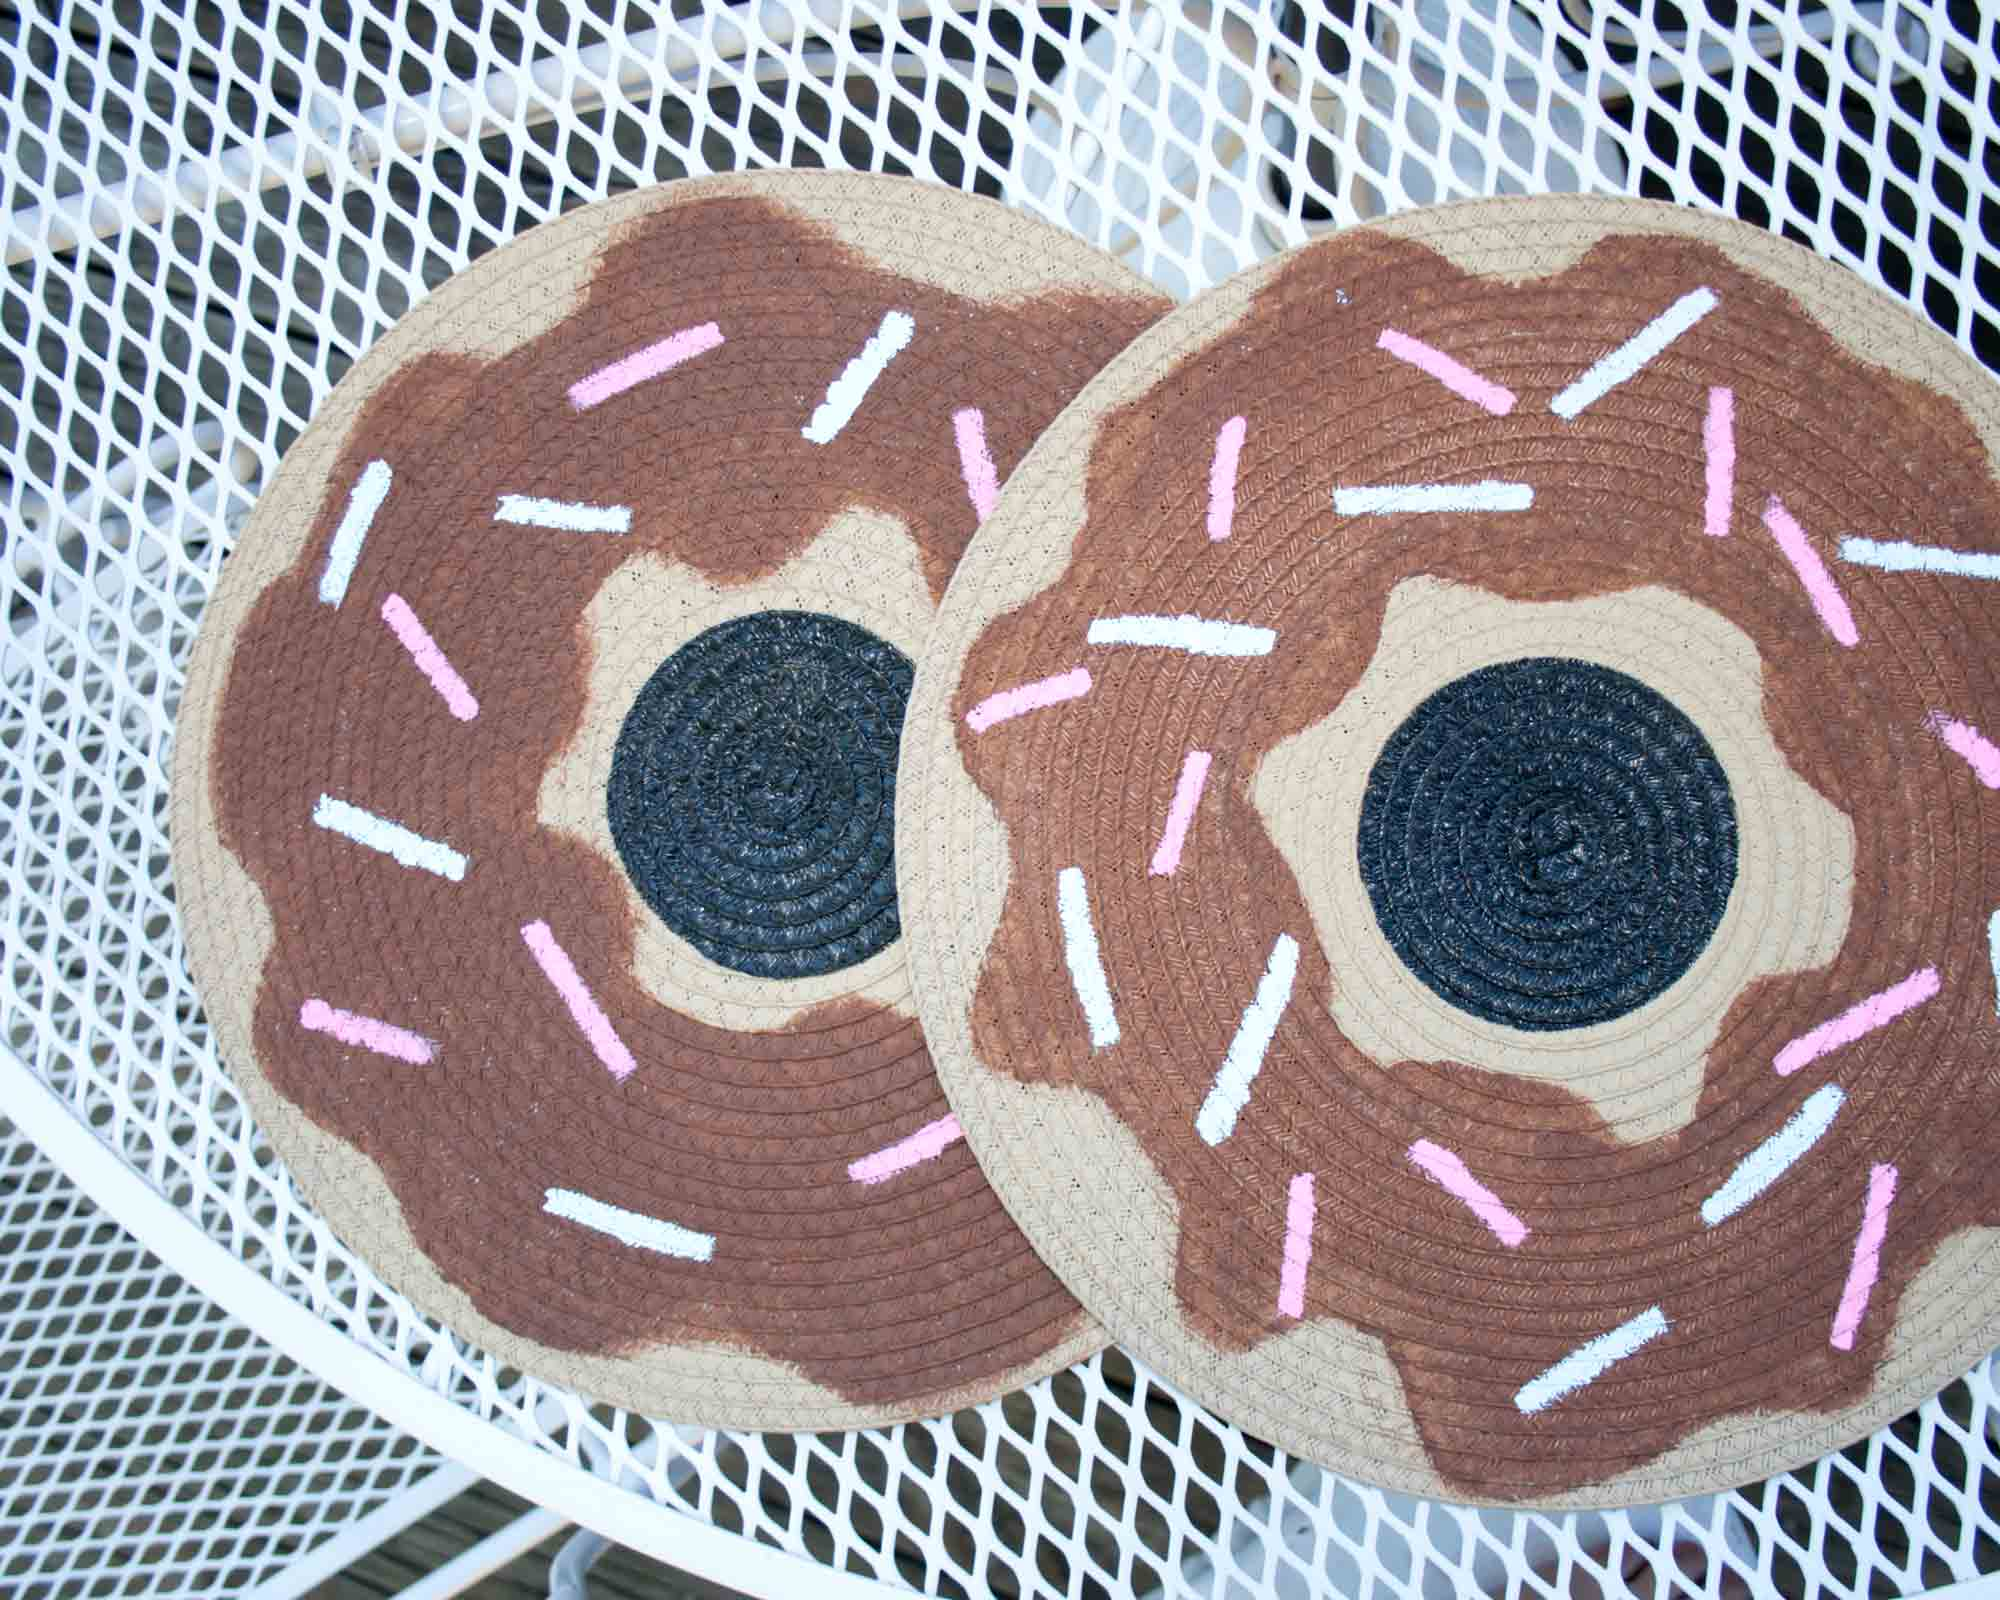 Watermelon and Donut Placemats || from myonlysunshineblog #placemats #diy #fruit #watermelon #donuts